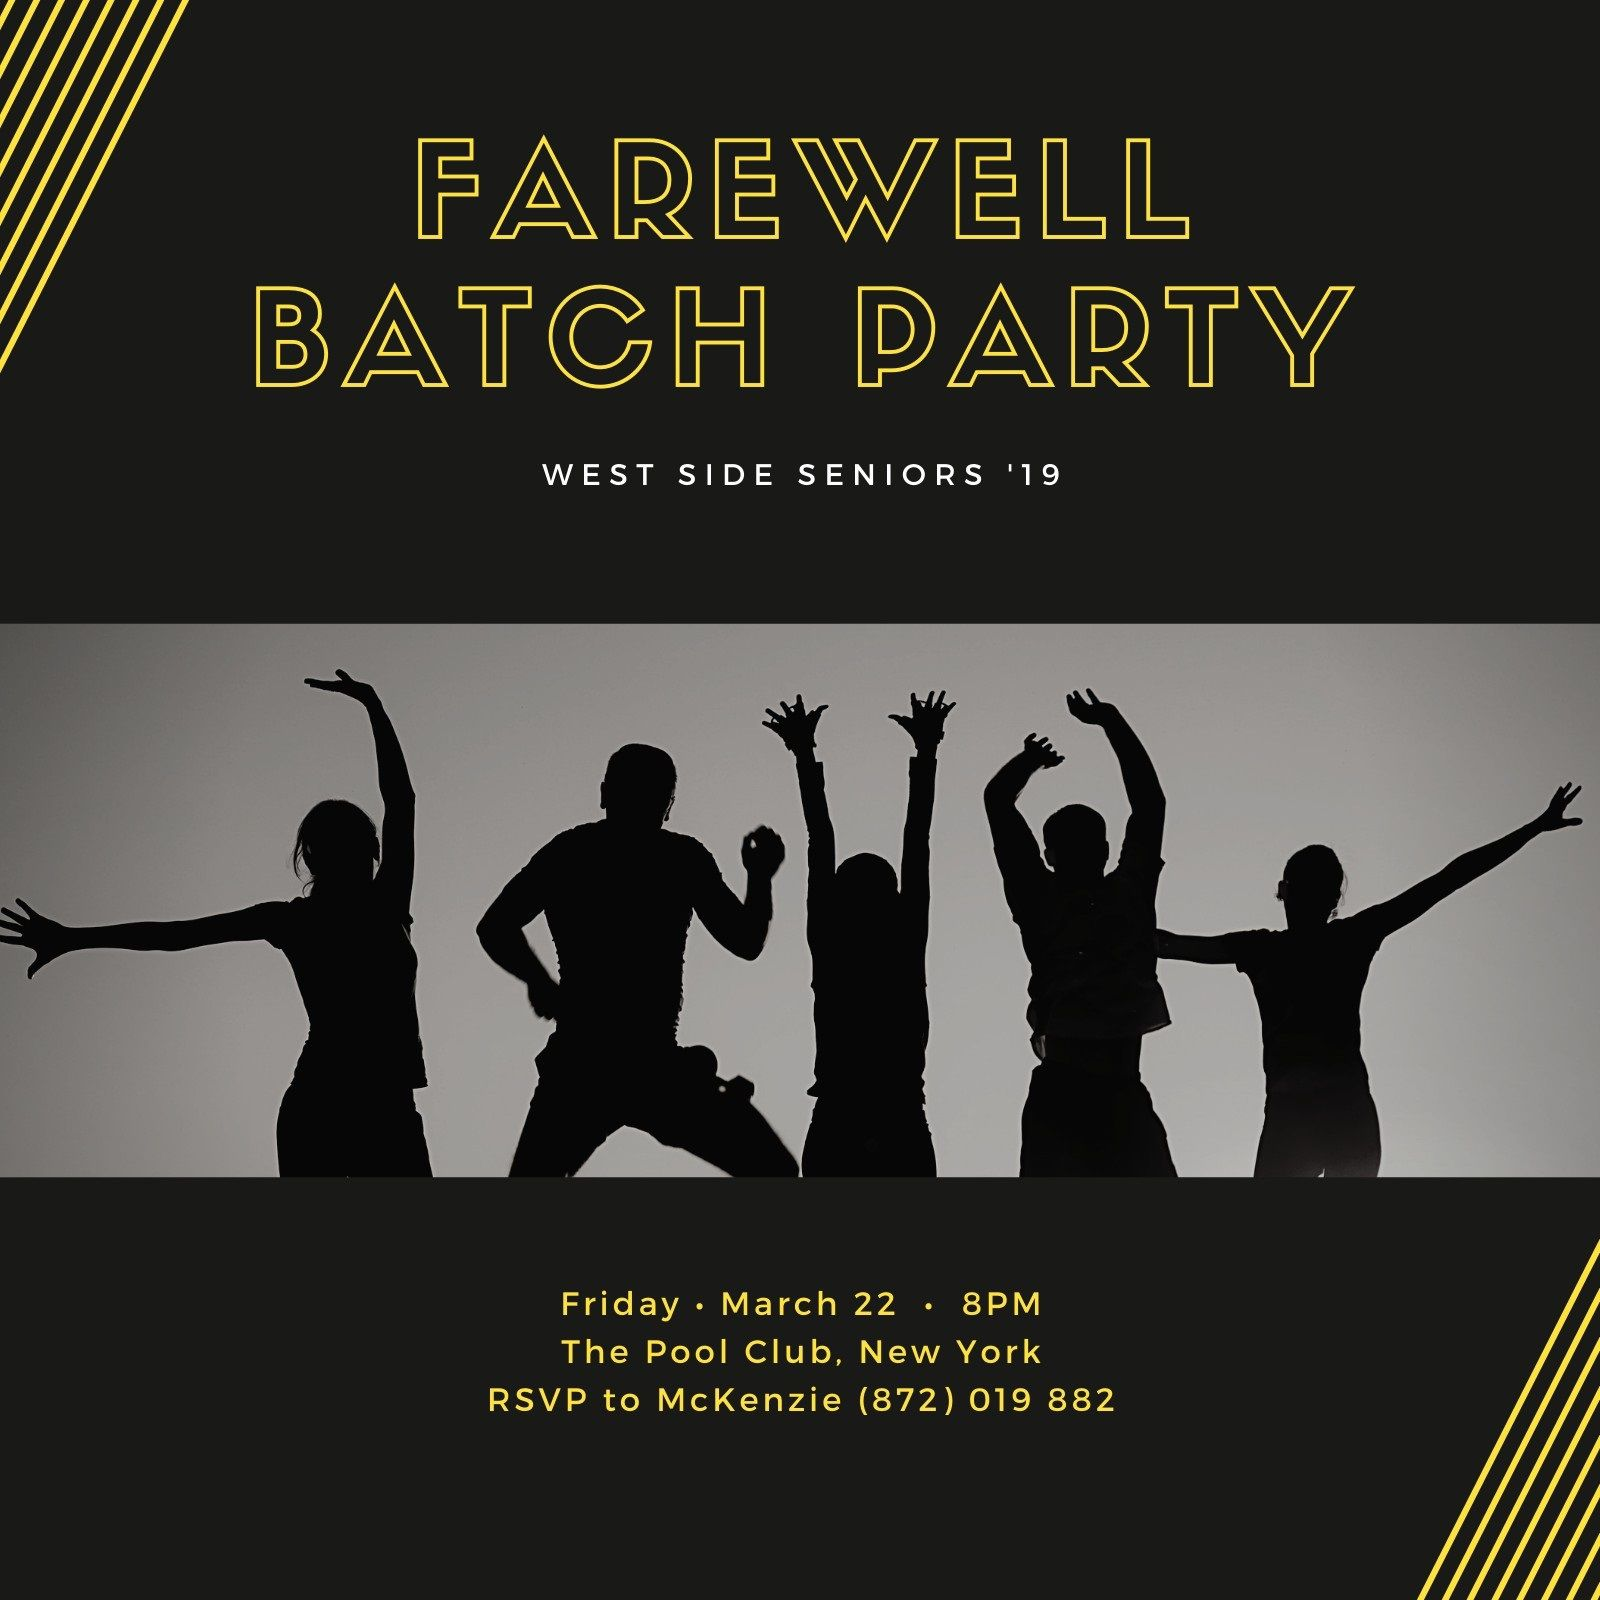 005 Shocking Farewell Party Invitation Template Free Concept  Email Printable WordFull